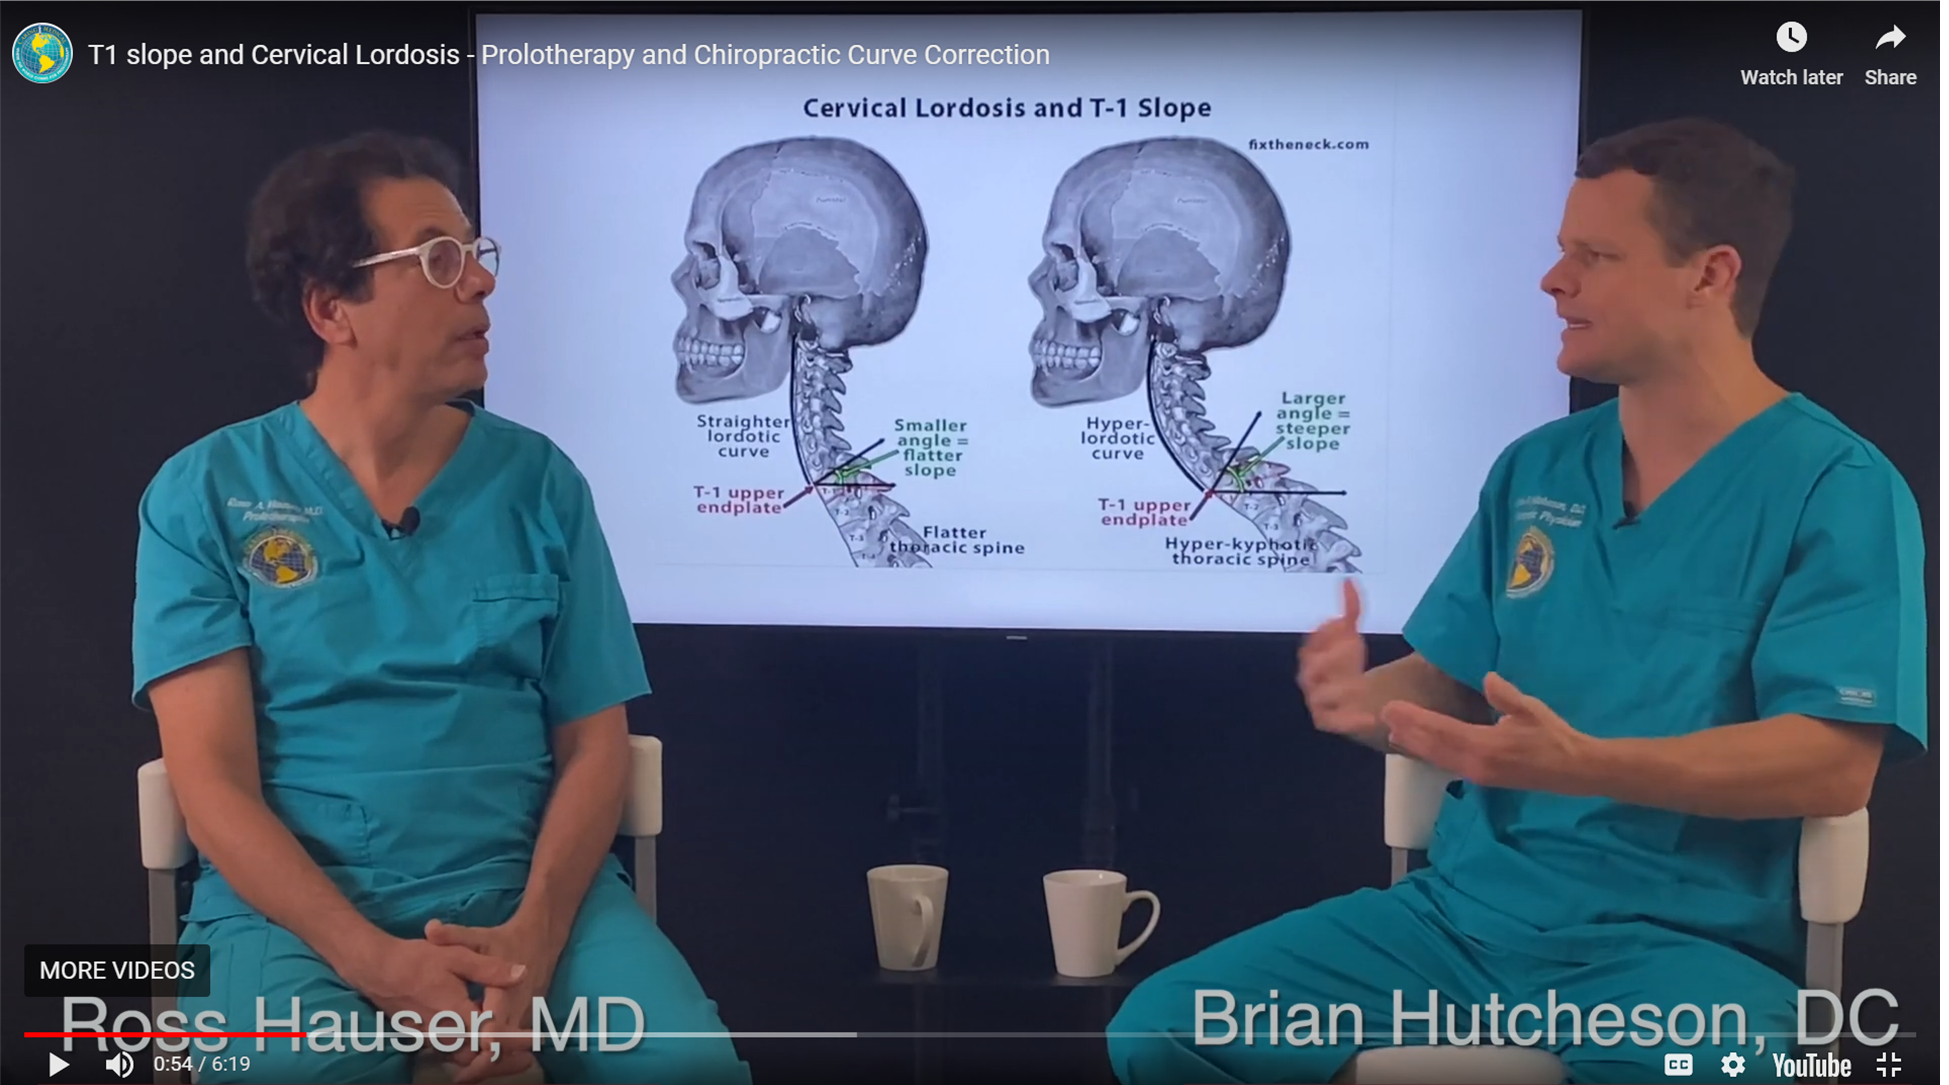 In this still photograph from the video Dr. Hutch, a background illustration demonstrates that C7/T1 Slope is too low, you will have a very flat curve spine, and a loss of curvature. If the angle is too steep, your head will jut out forward ahead of the rest of your body and stress, not only the cervical spine but the mid-back thoracic spine and the lumbar spine.